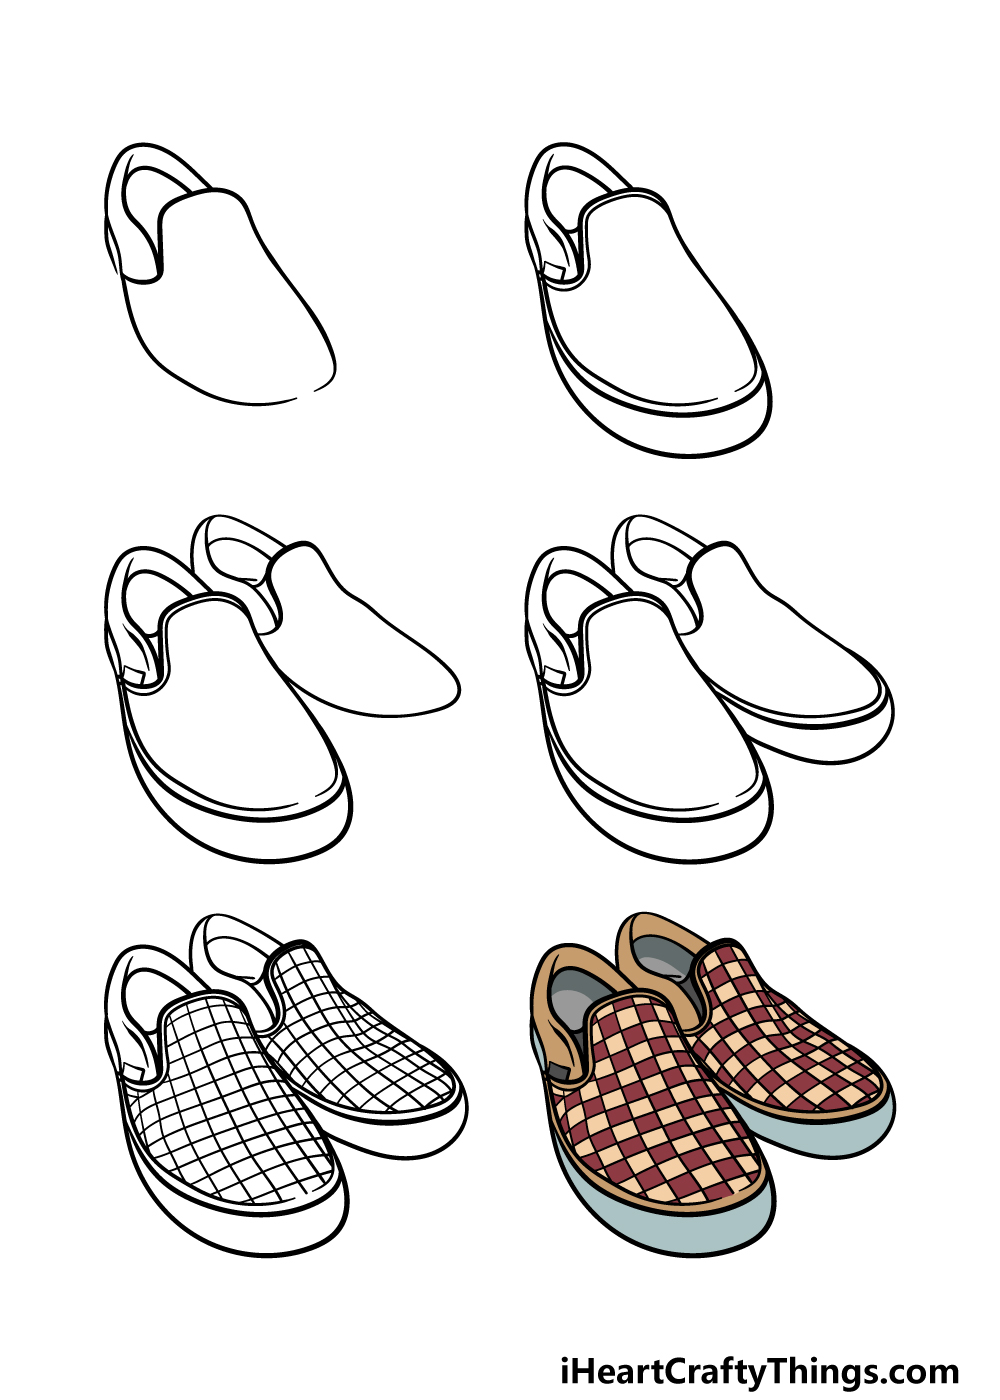 how to draw vans shoes in 6 steps